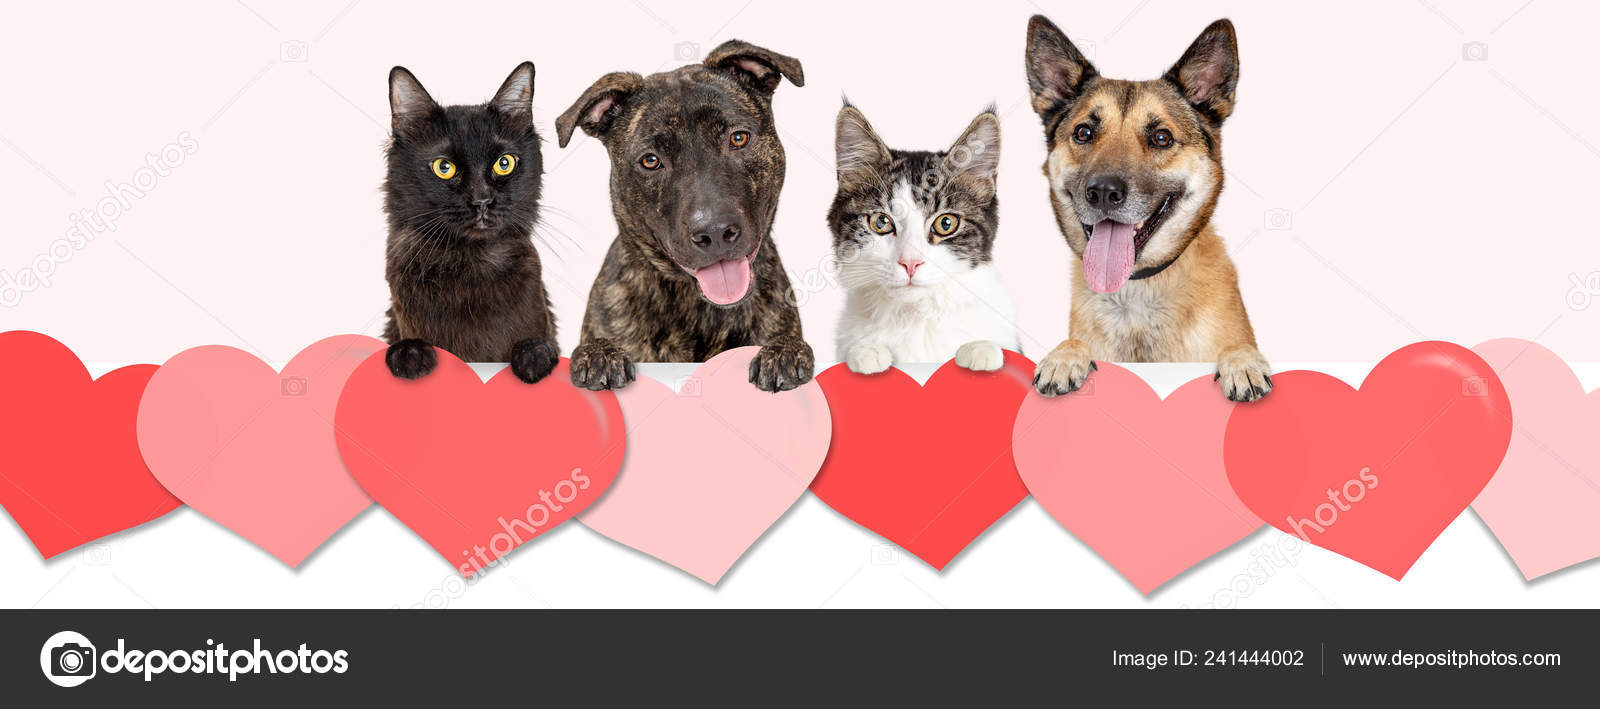 Dogs Cats Hanging Row Valentine Day Hearts Website Banner Social Stock Photo C Adogslifephoto 241444002